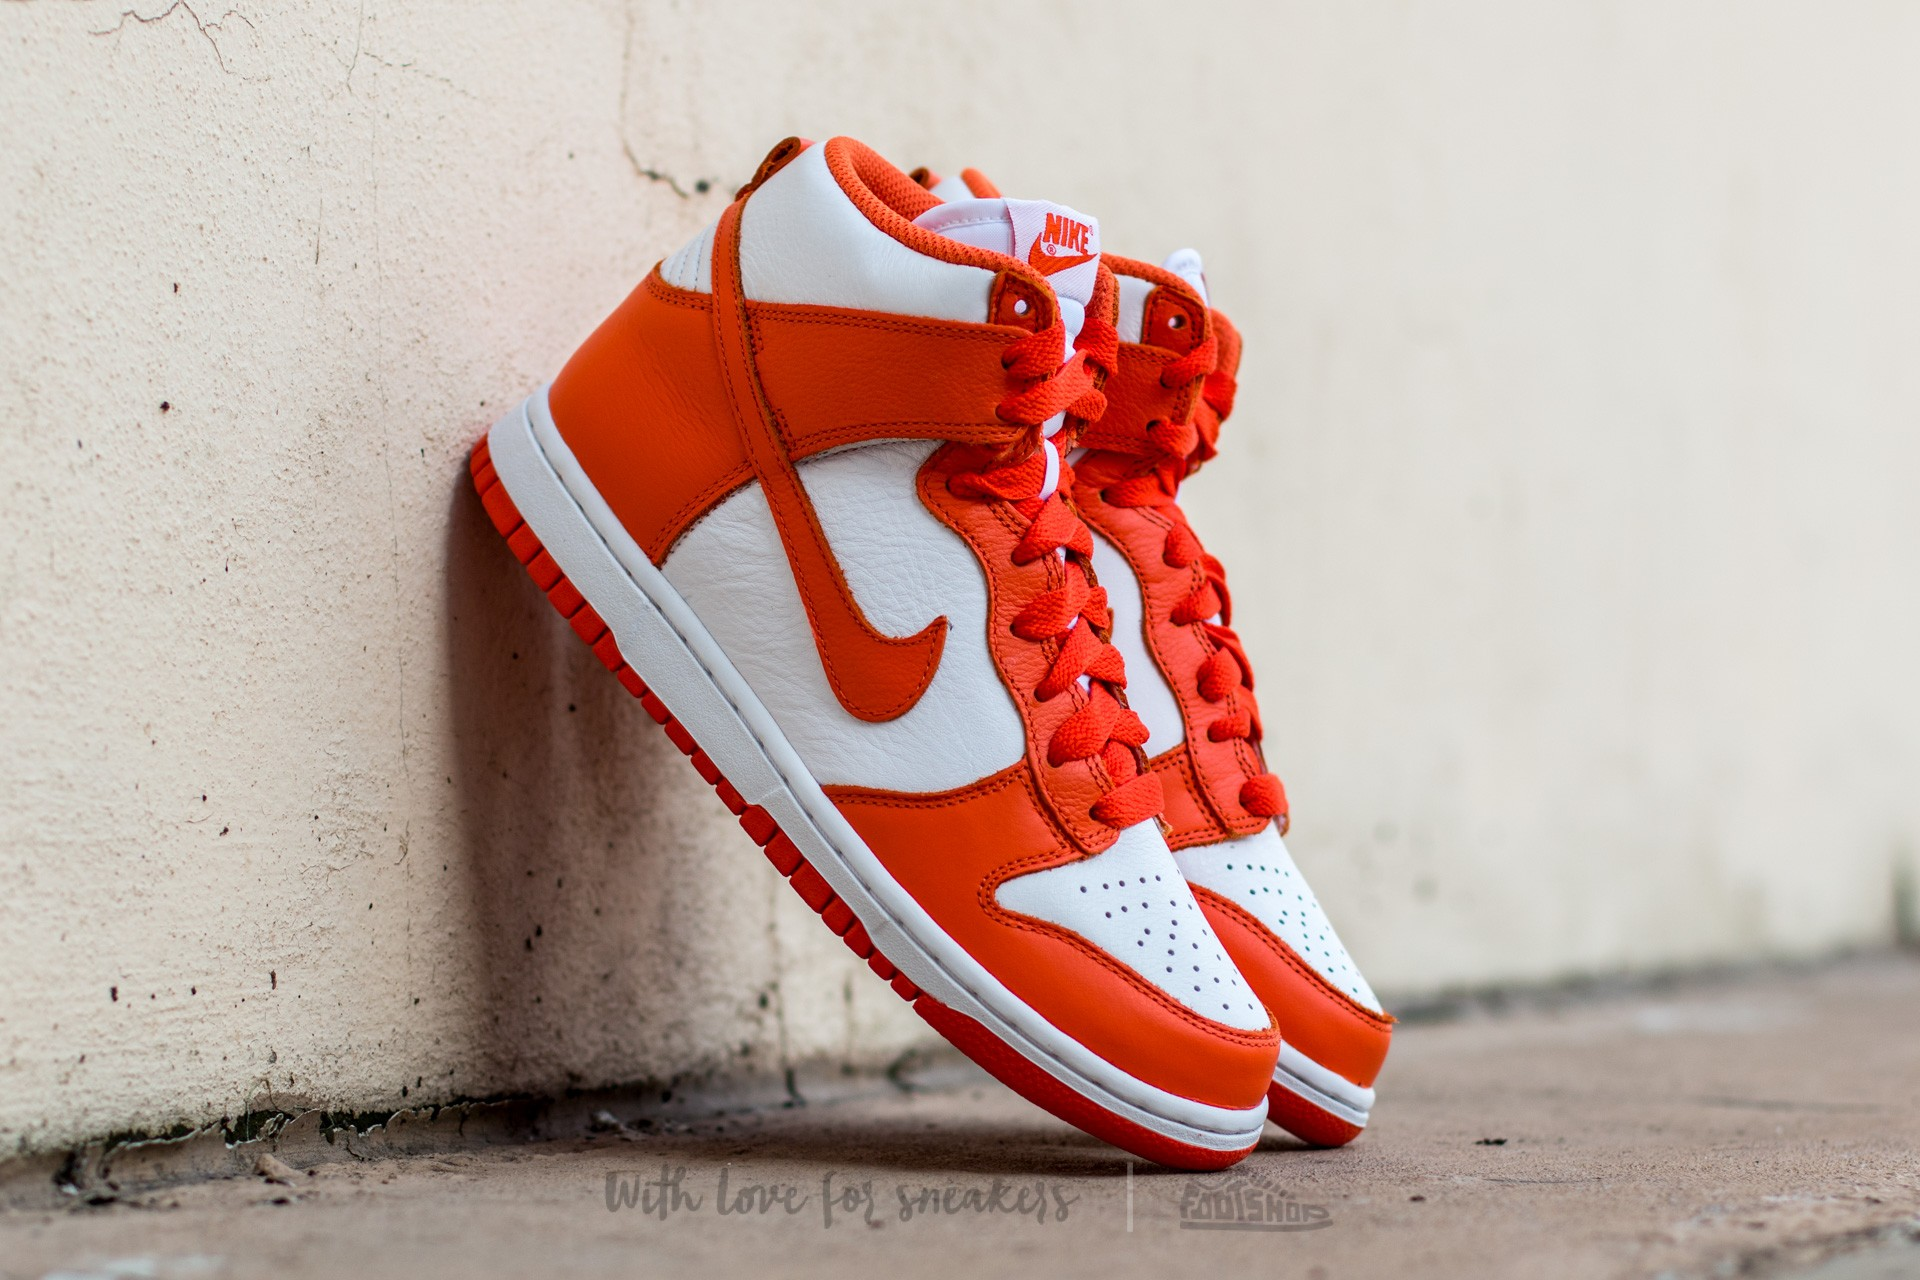 Nike Wmns Dunk Retro QS White/ Orange Blaze